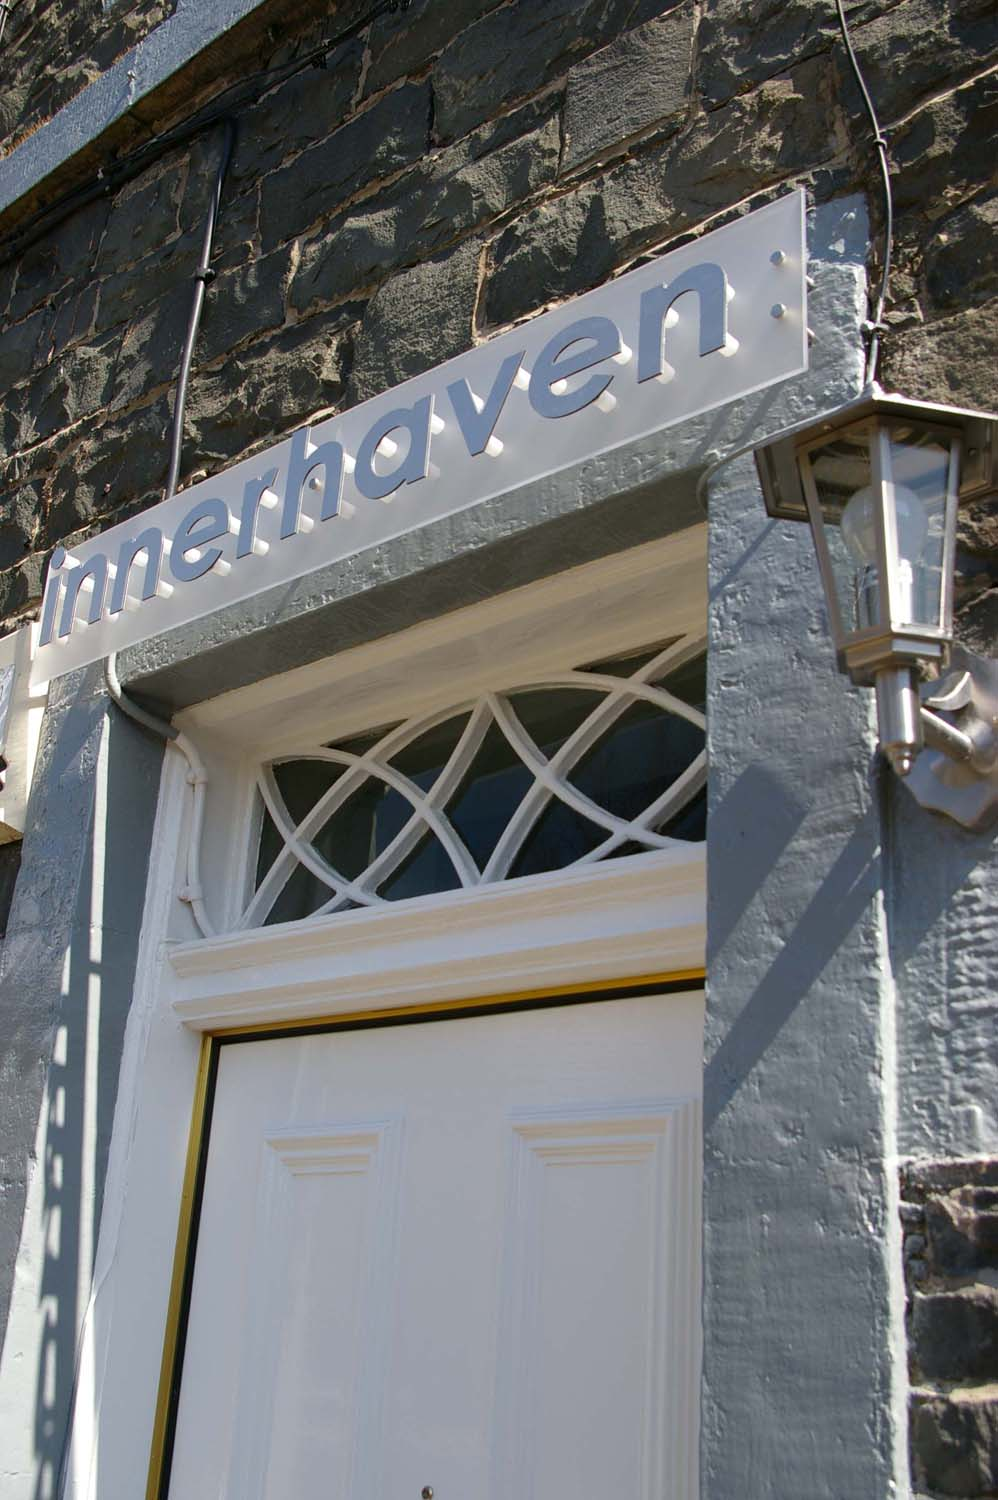 Innerhaven self catering holiday accommodation